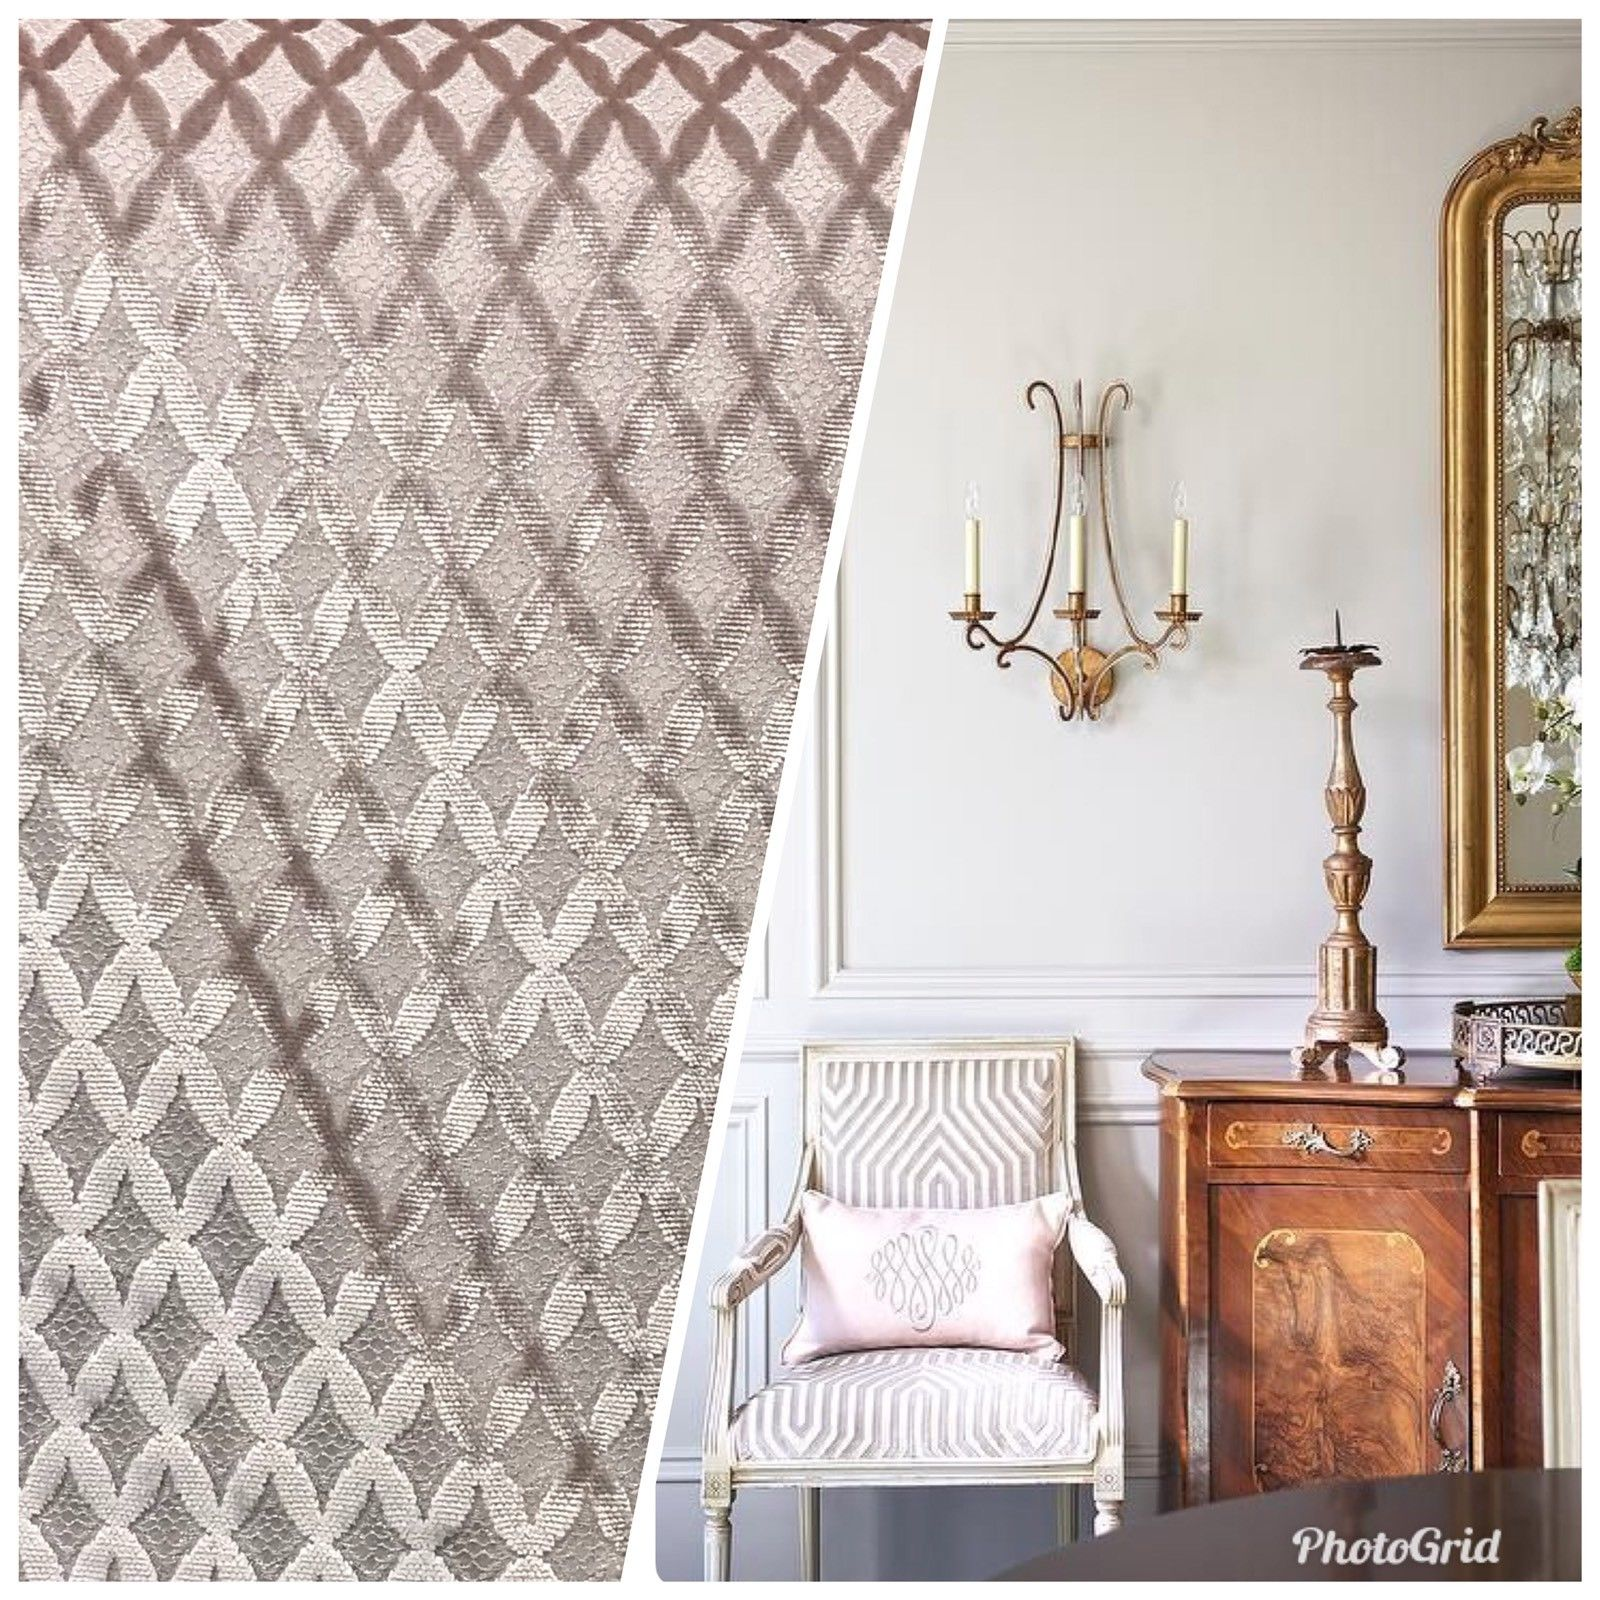 Made In Italy Designer Upholstery Burnout Chenille Velvet Fabric Rose Gold Pink - Fancy Styles Fabric Pierre Frey Lee Jofa Brunschwig & Fils